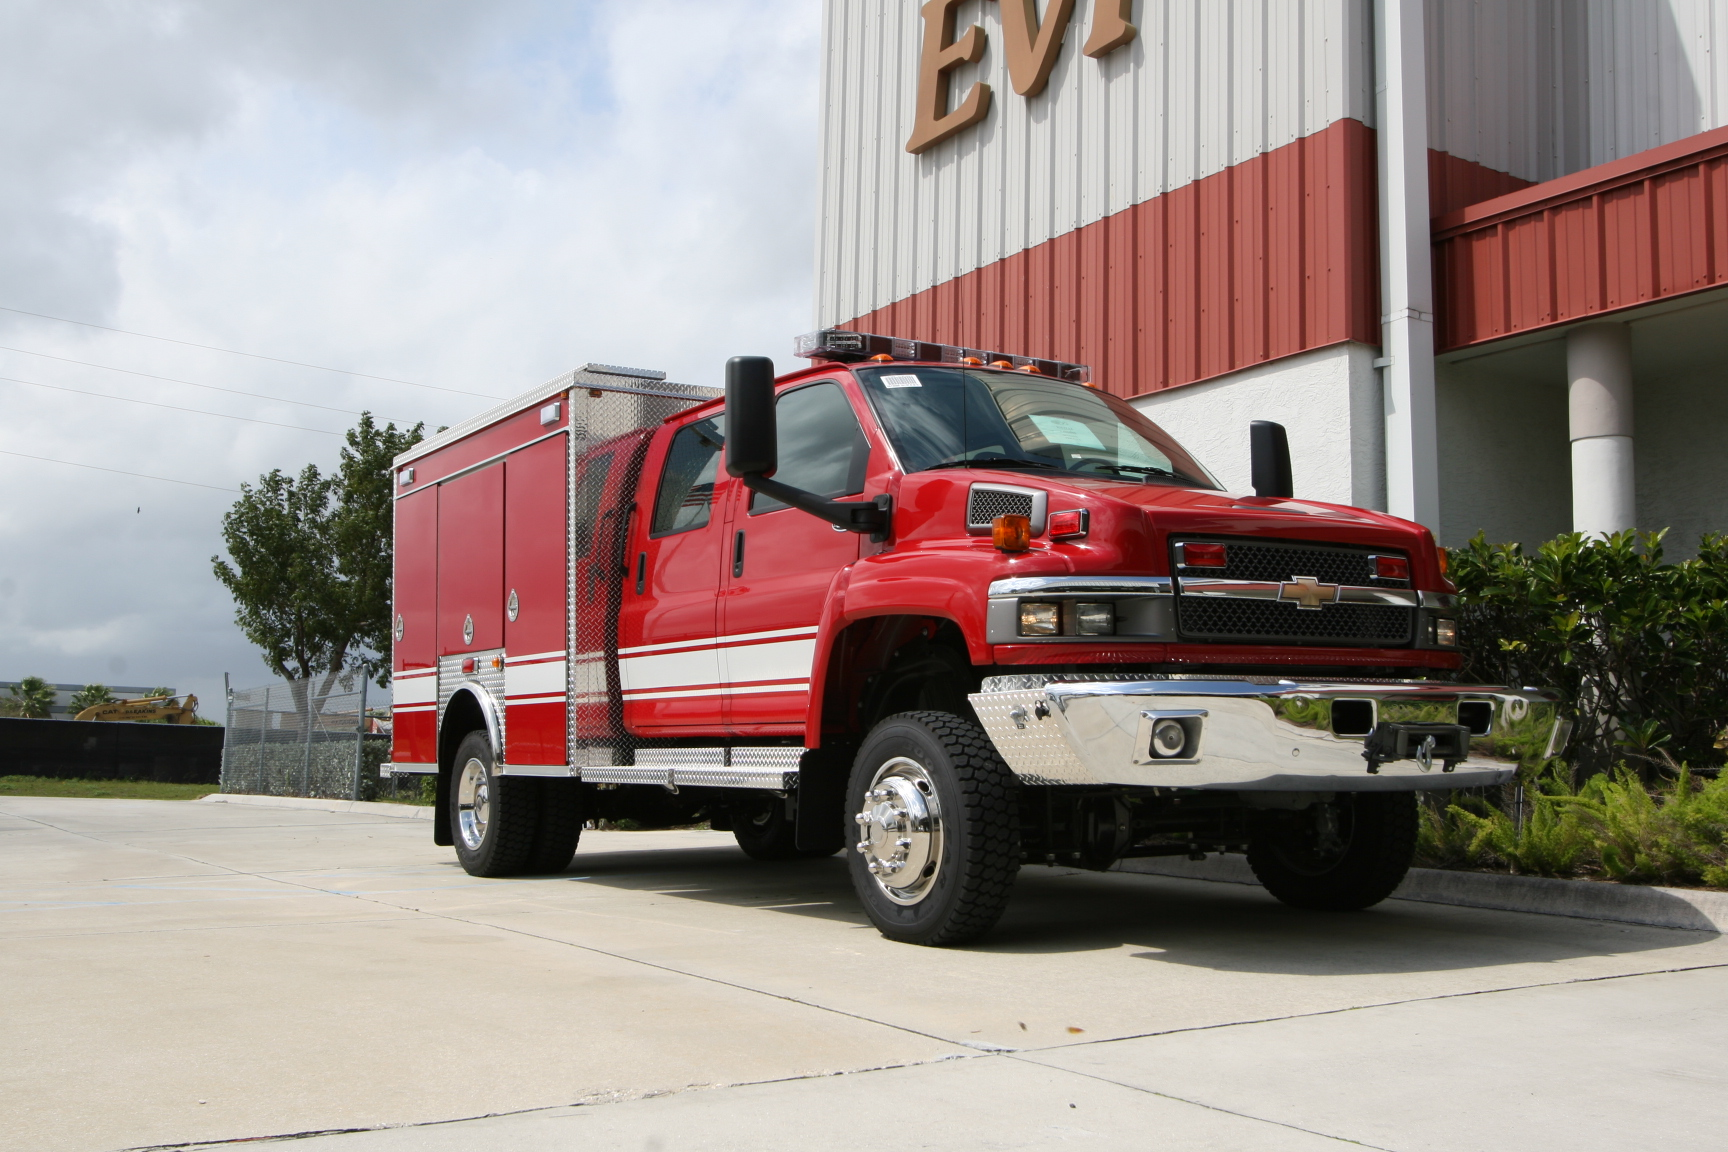 10-Ft. Quick Attack Fire Truck